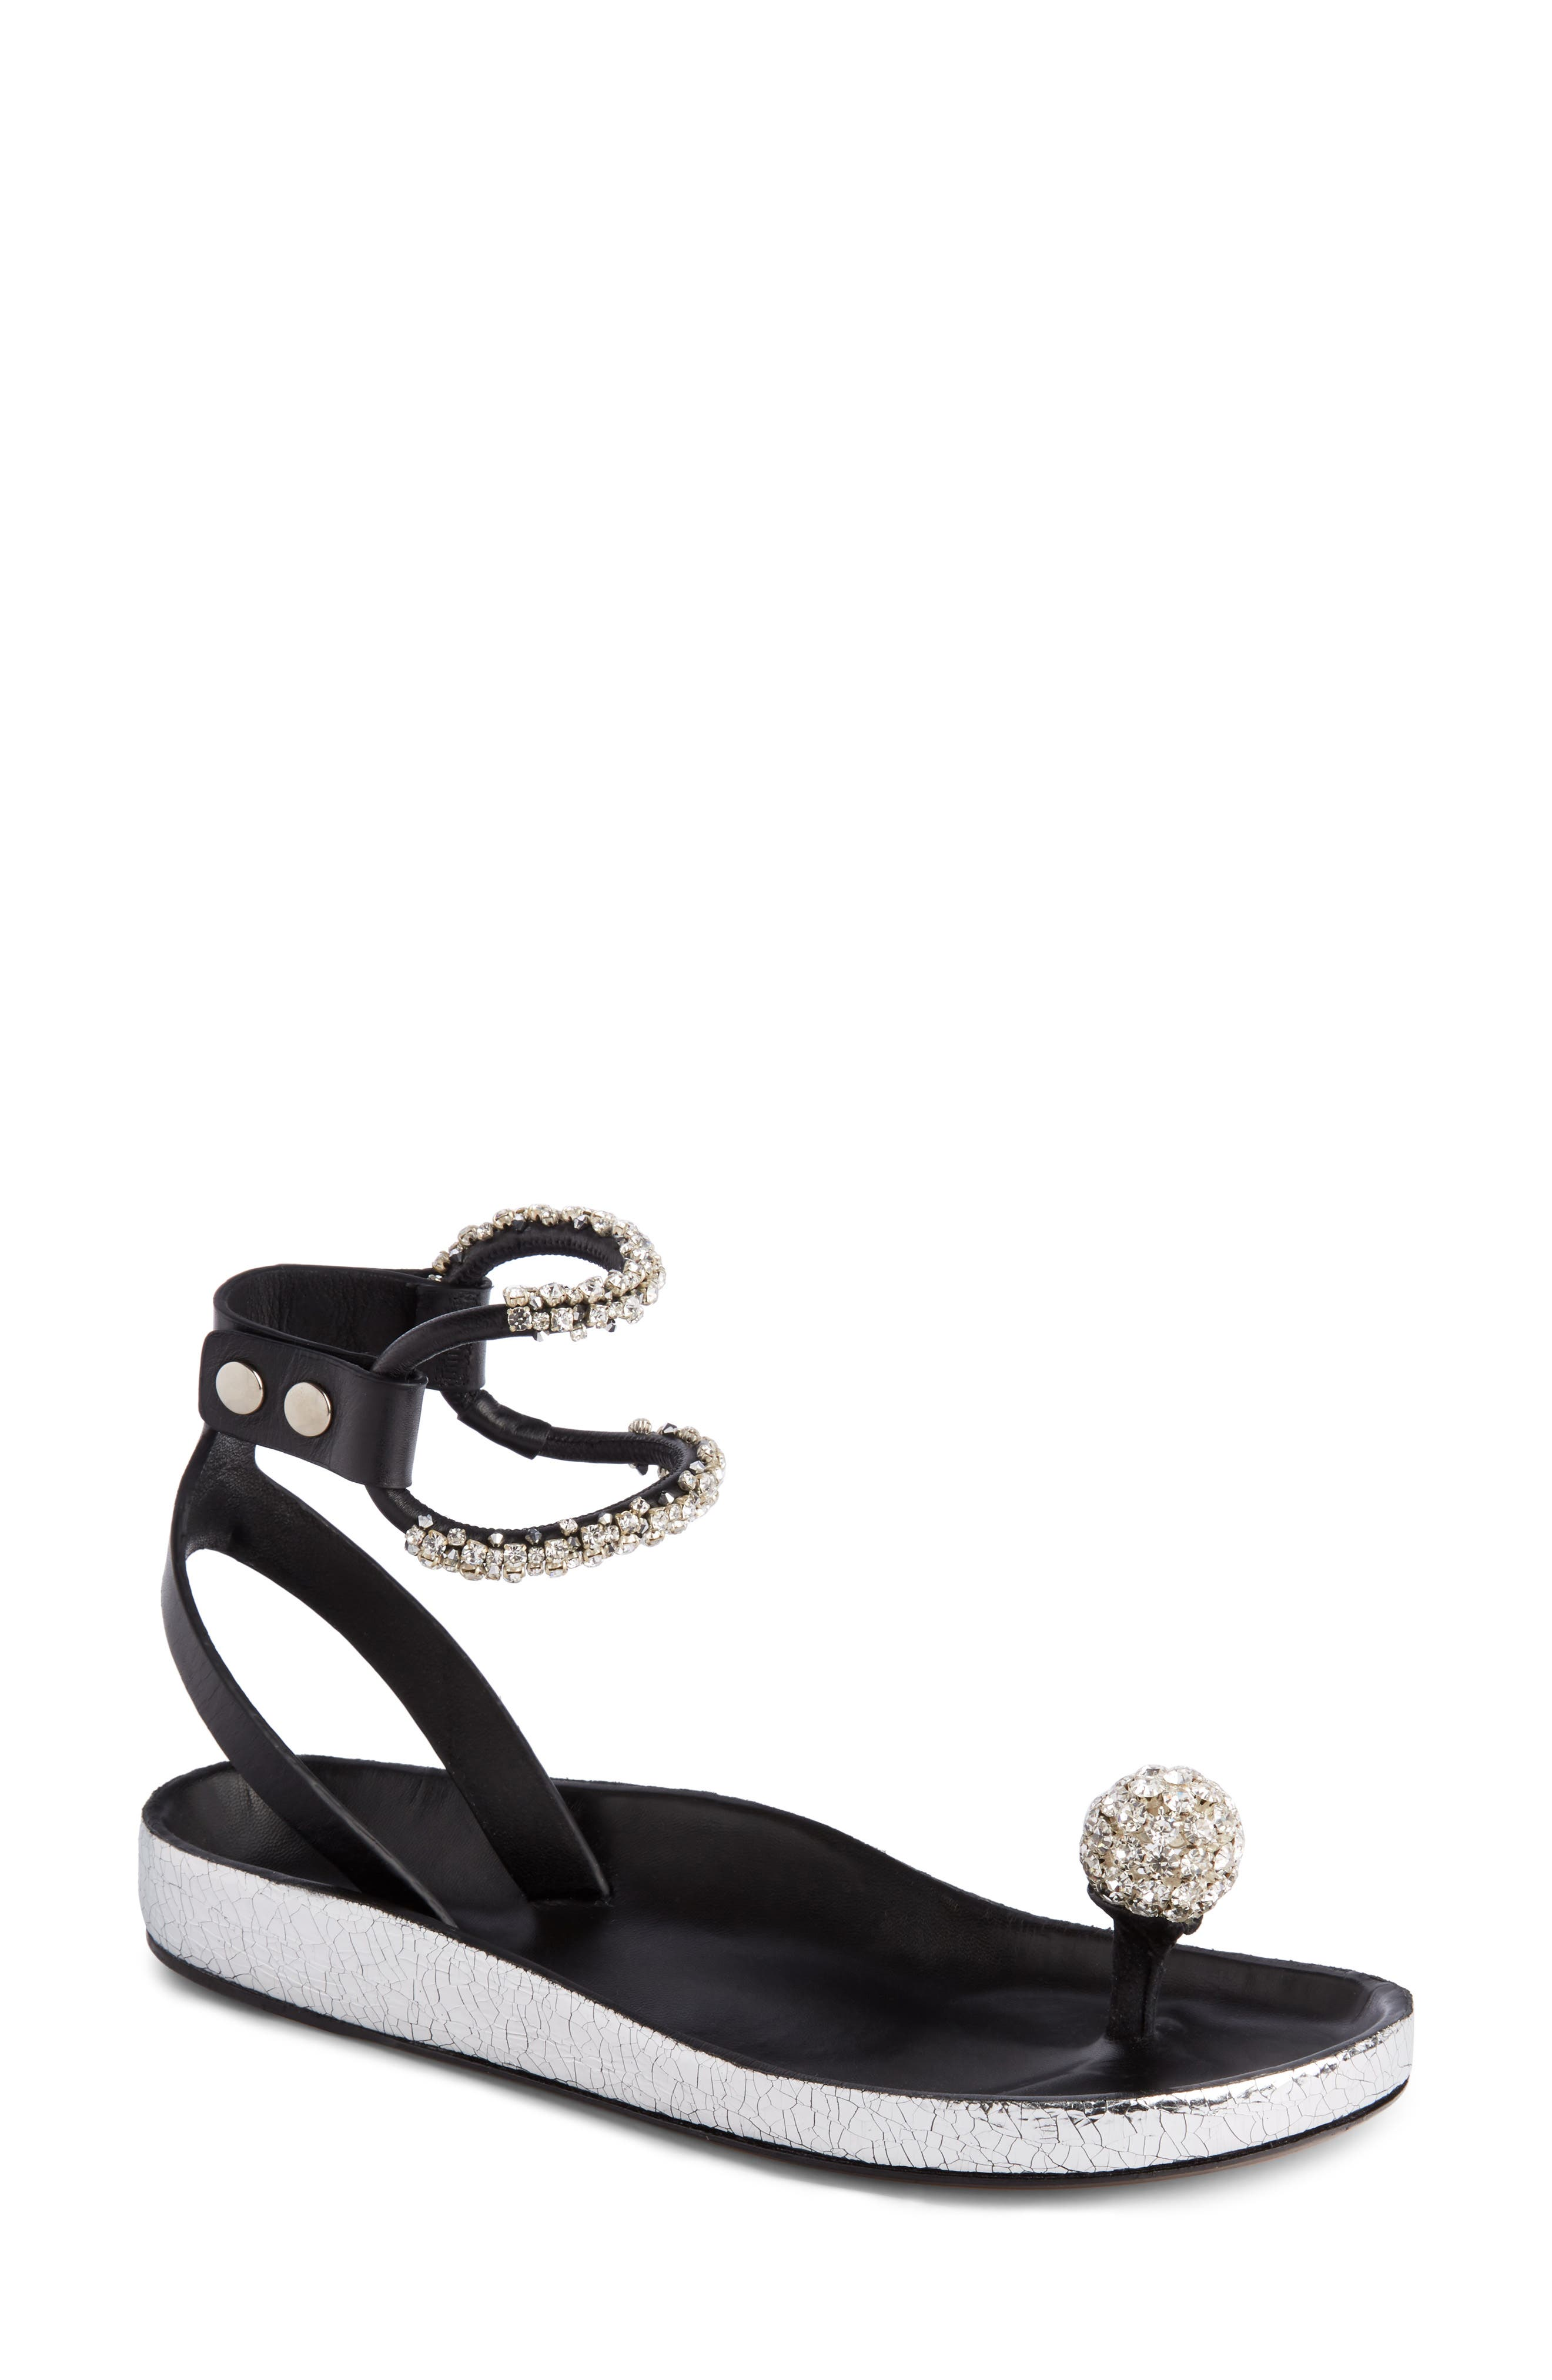 Ecly Crystal Ball Sandal,                         Main,                         color, 040